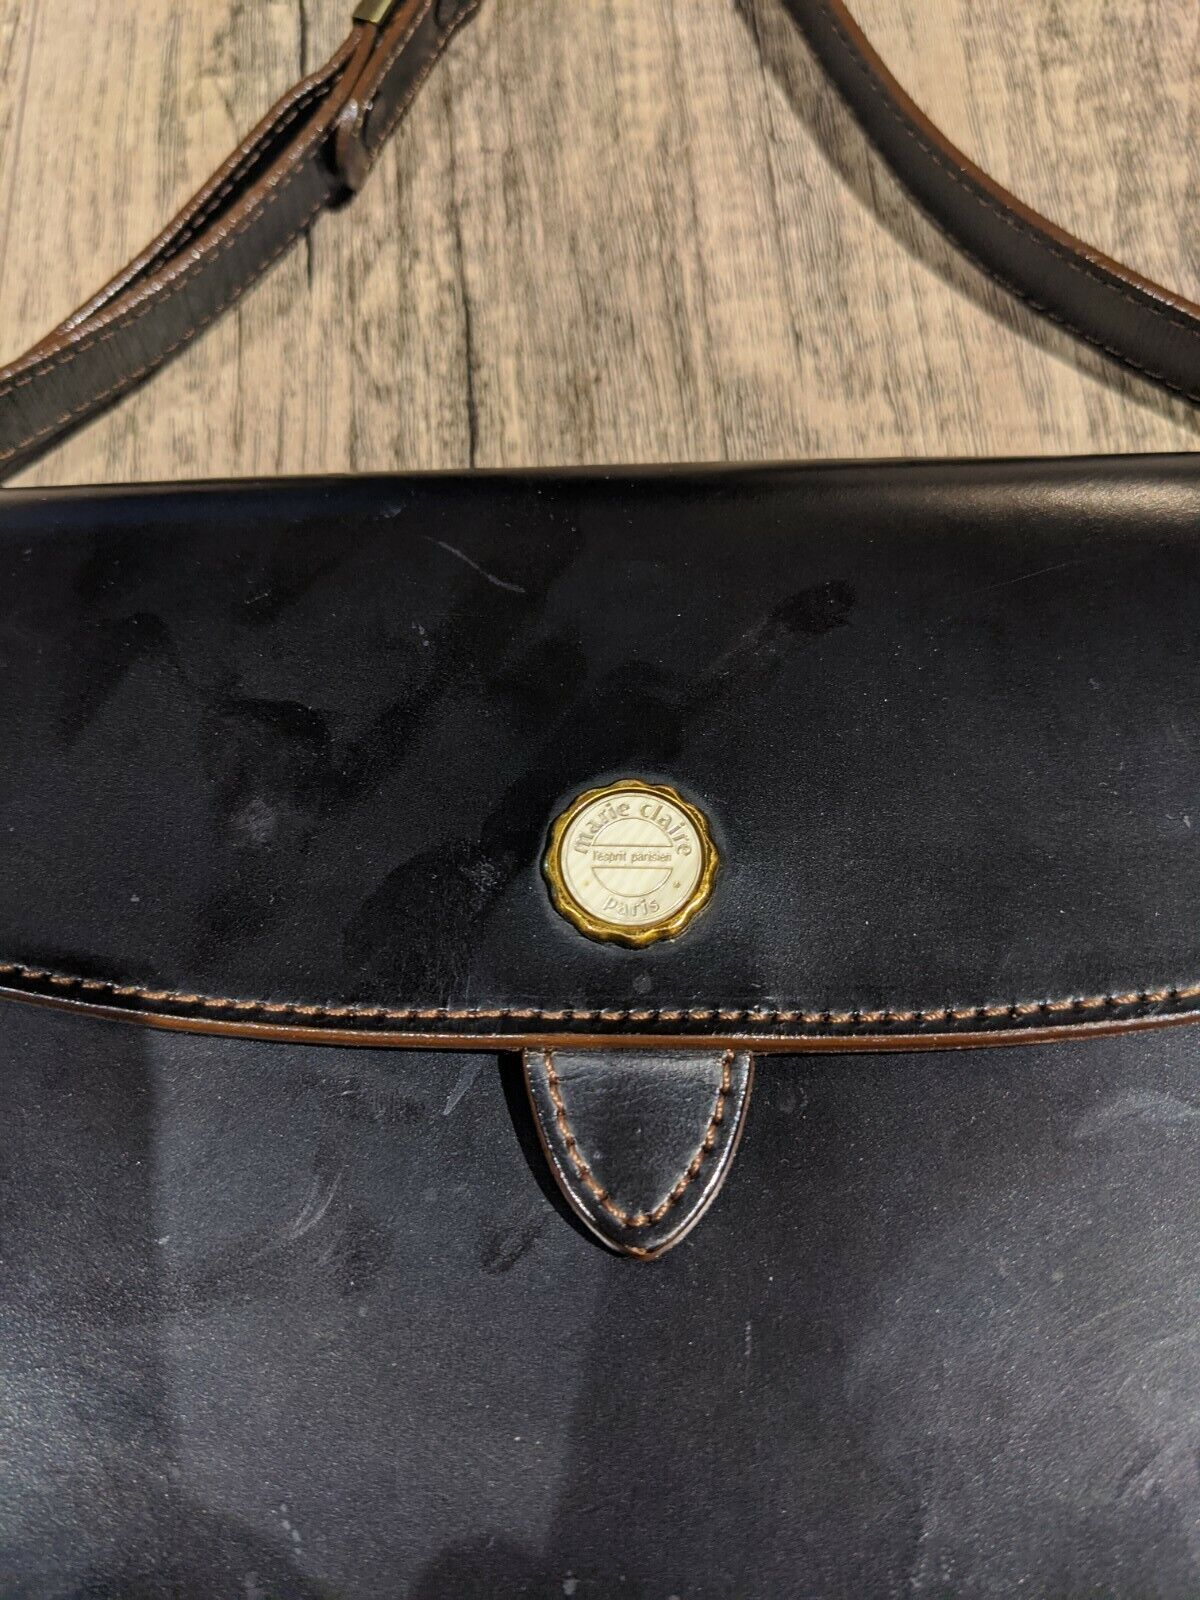 Authentic Marie Claire Black Small Leather Handbag - image 3